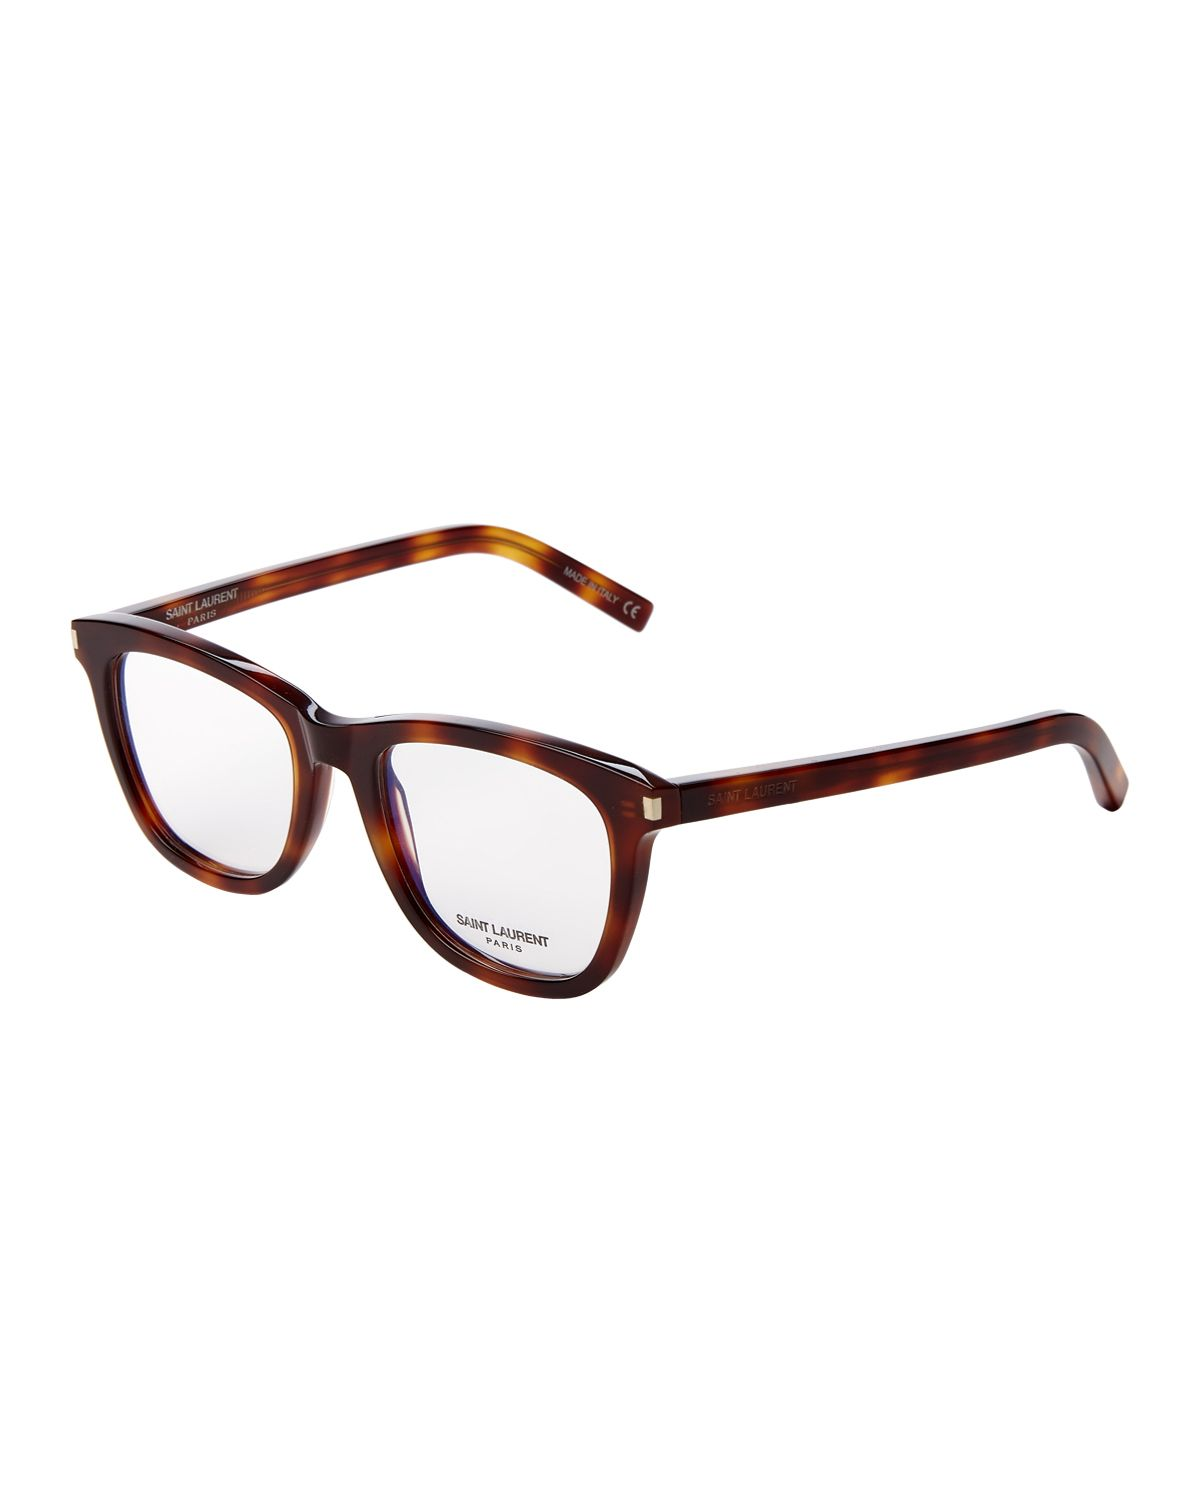 d96730a953f Saint Laurent SL168-002 Tortoise Square Optical Frames